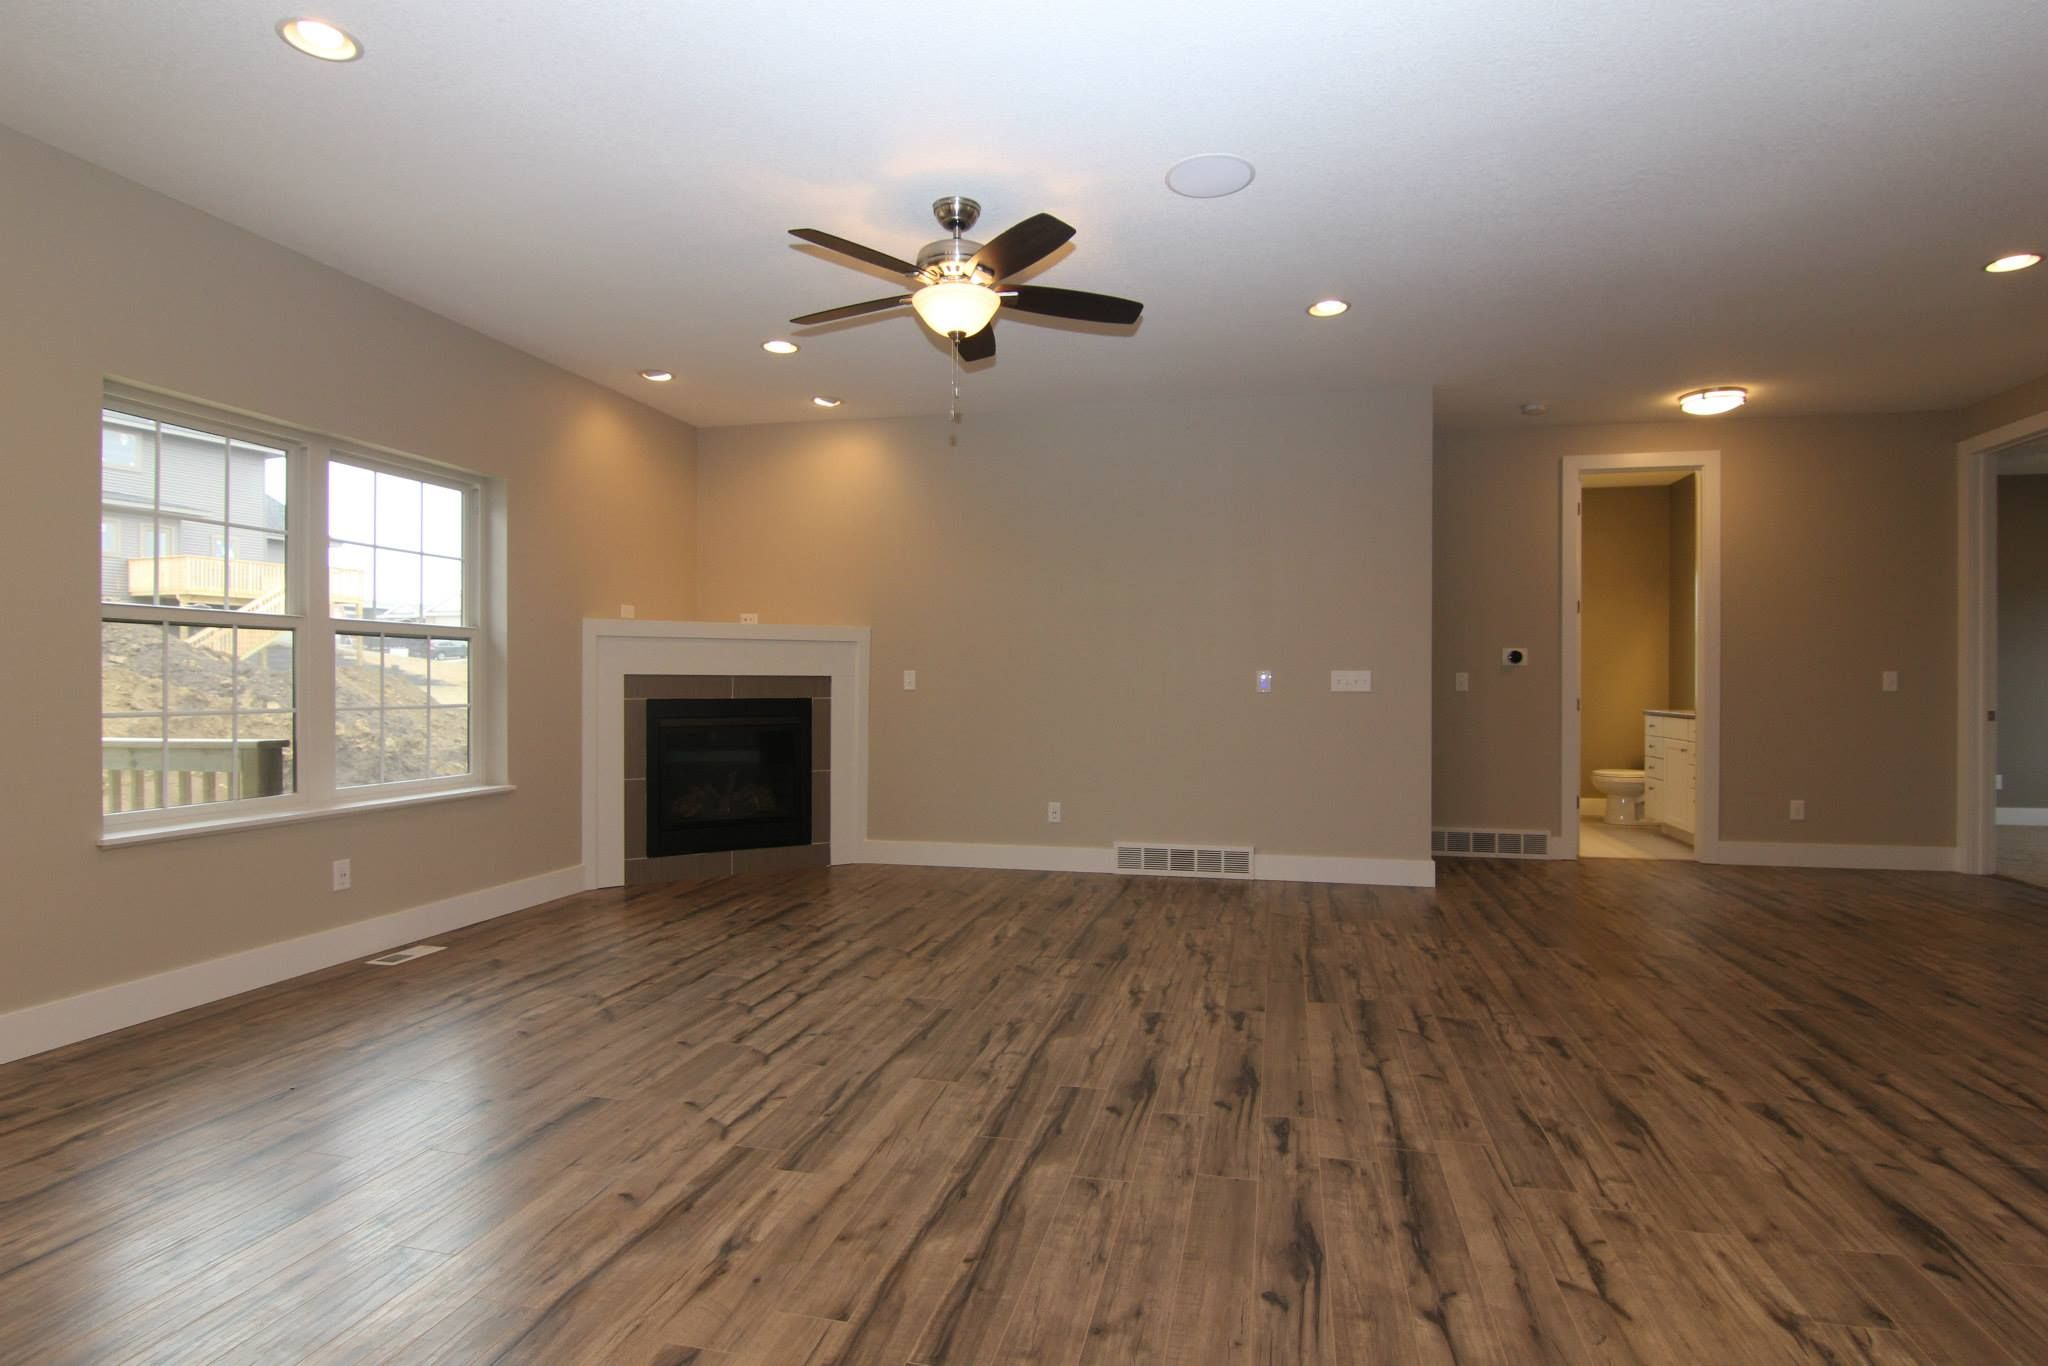 Shaw Timberline Laminate flooring COLOR 00543. Ceiling